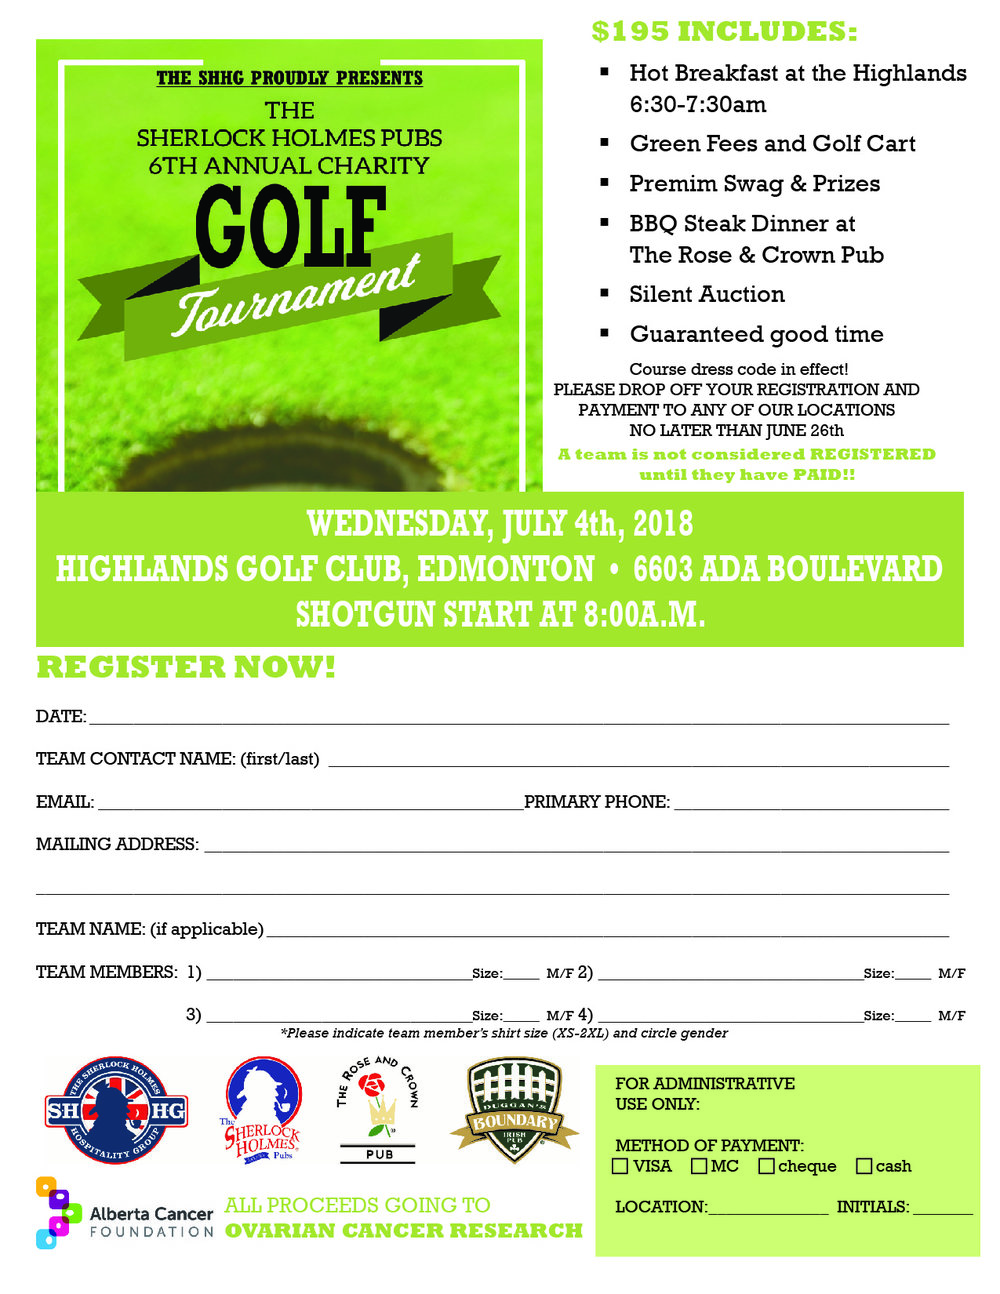 2018 SHHG Charity Golf Tournament Registration Form.jpg